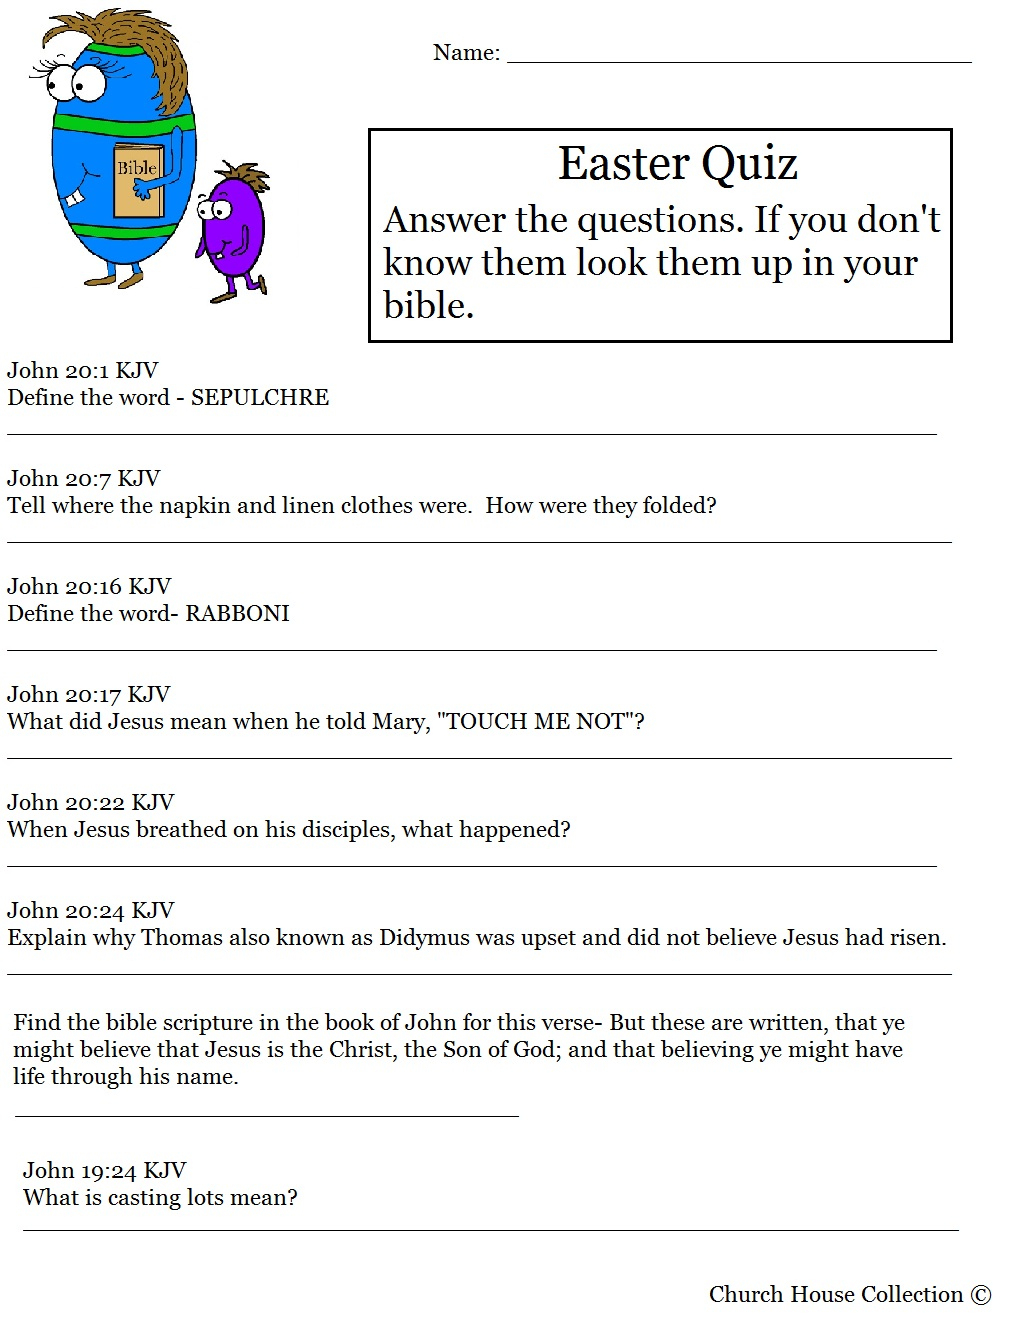 Hard Easter Quiz On Resurrection Of Jesus - Free Printable Bible Trivia For Adults